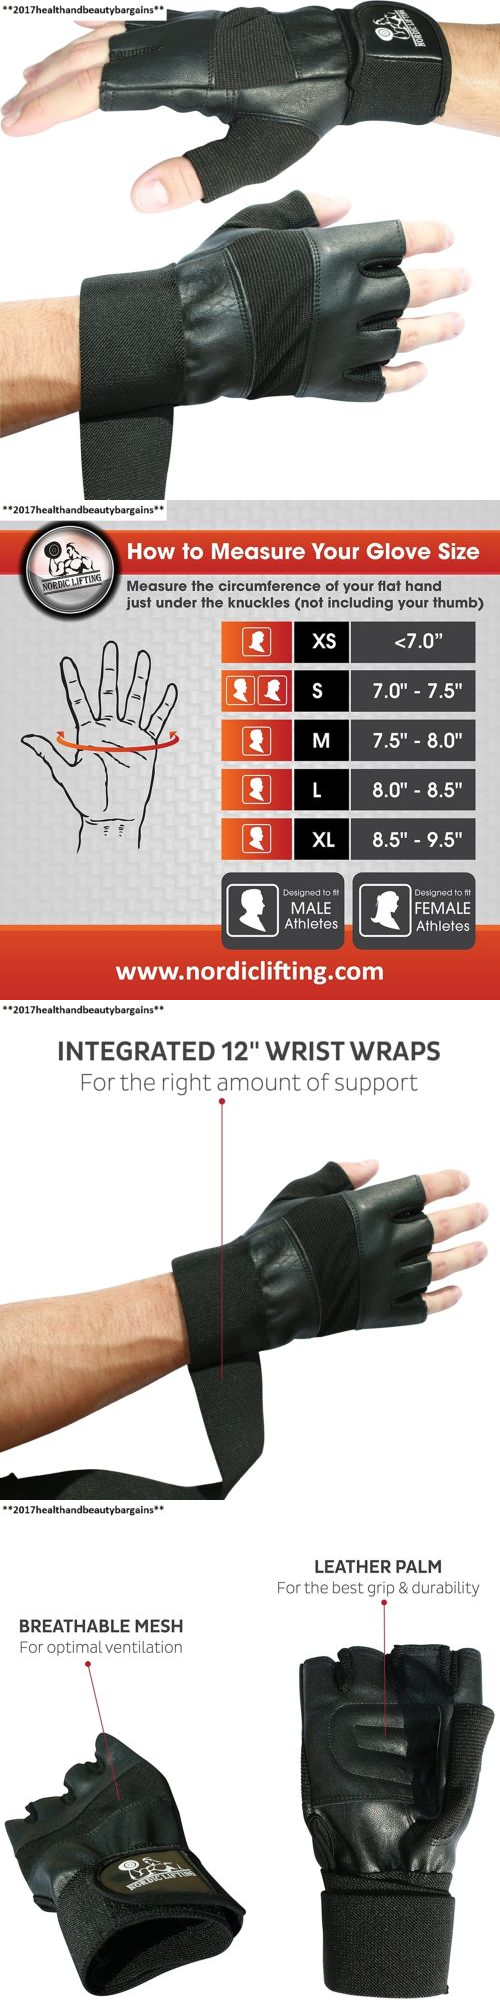 Gloves Straps and Hooks 179820: Weight Lifting Gloves With 12 Wrist Support For Gym Workout,... -> BUY IT NOW ONLY: $30.73 on eBay!